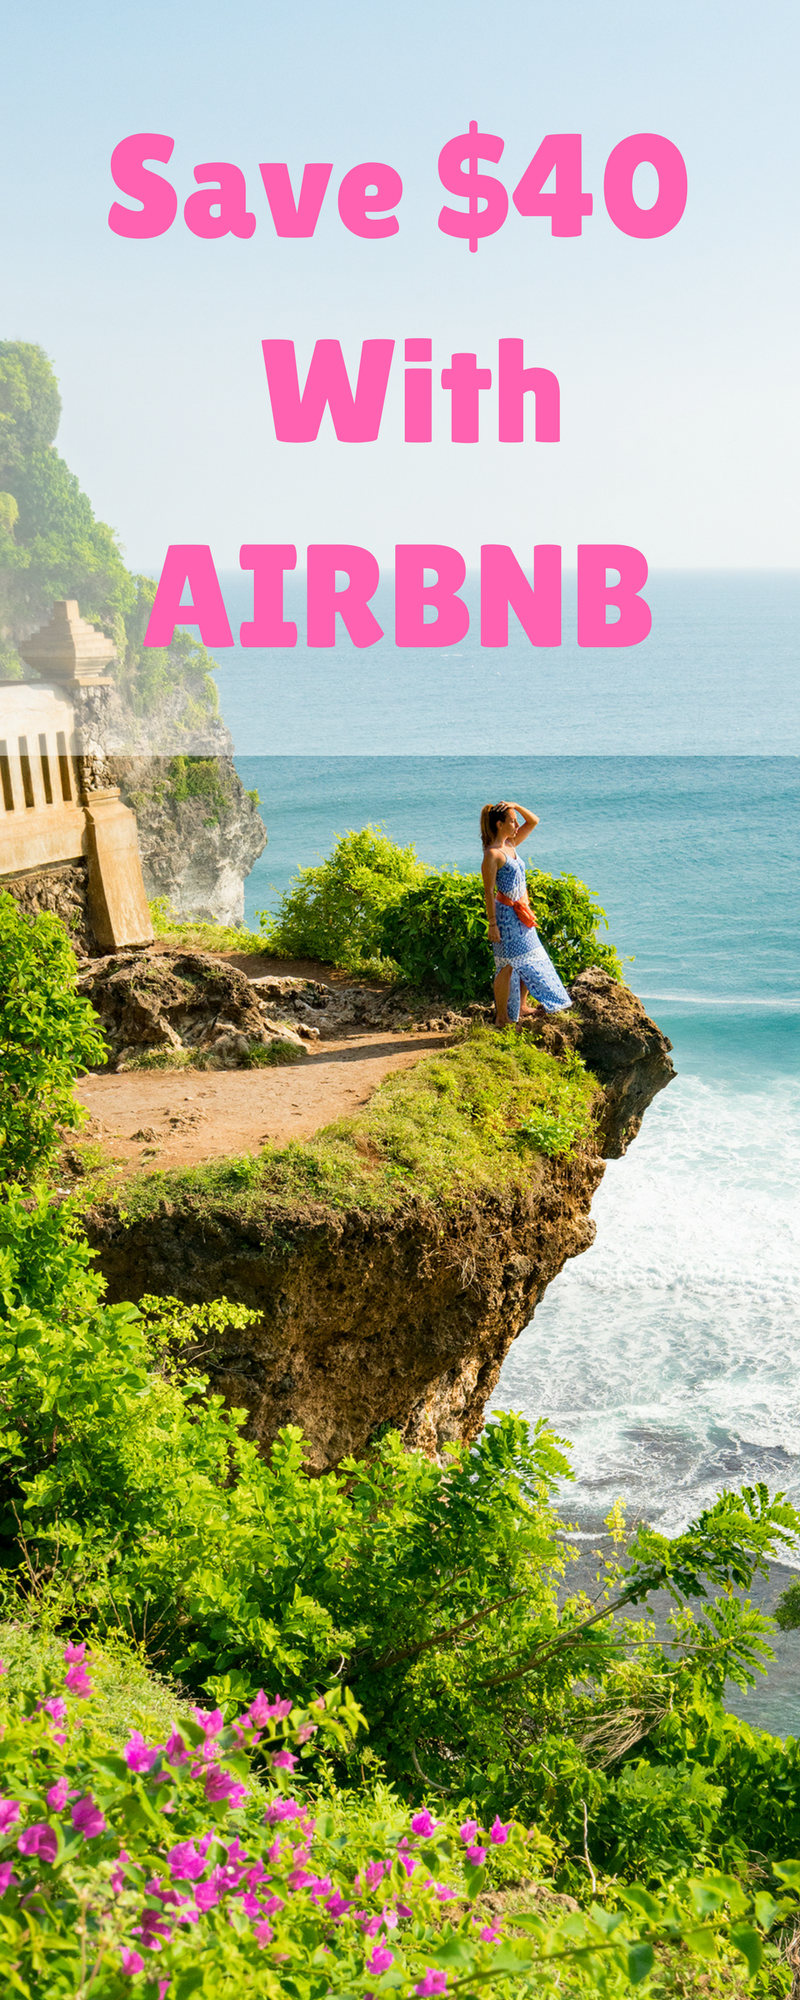 airbnb coupon code discount save $40 free